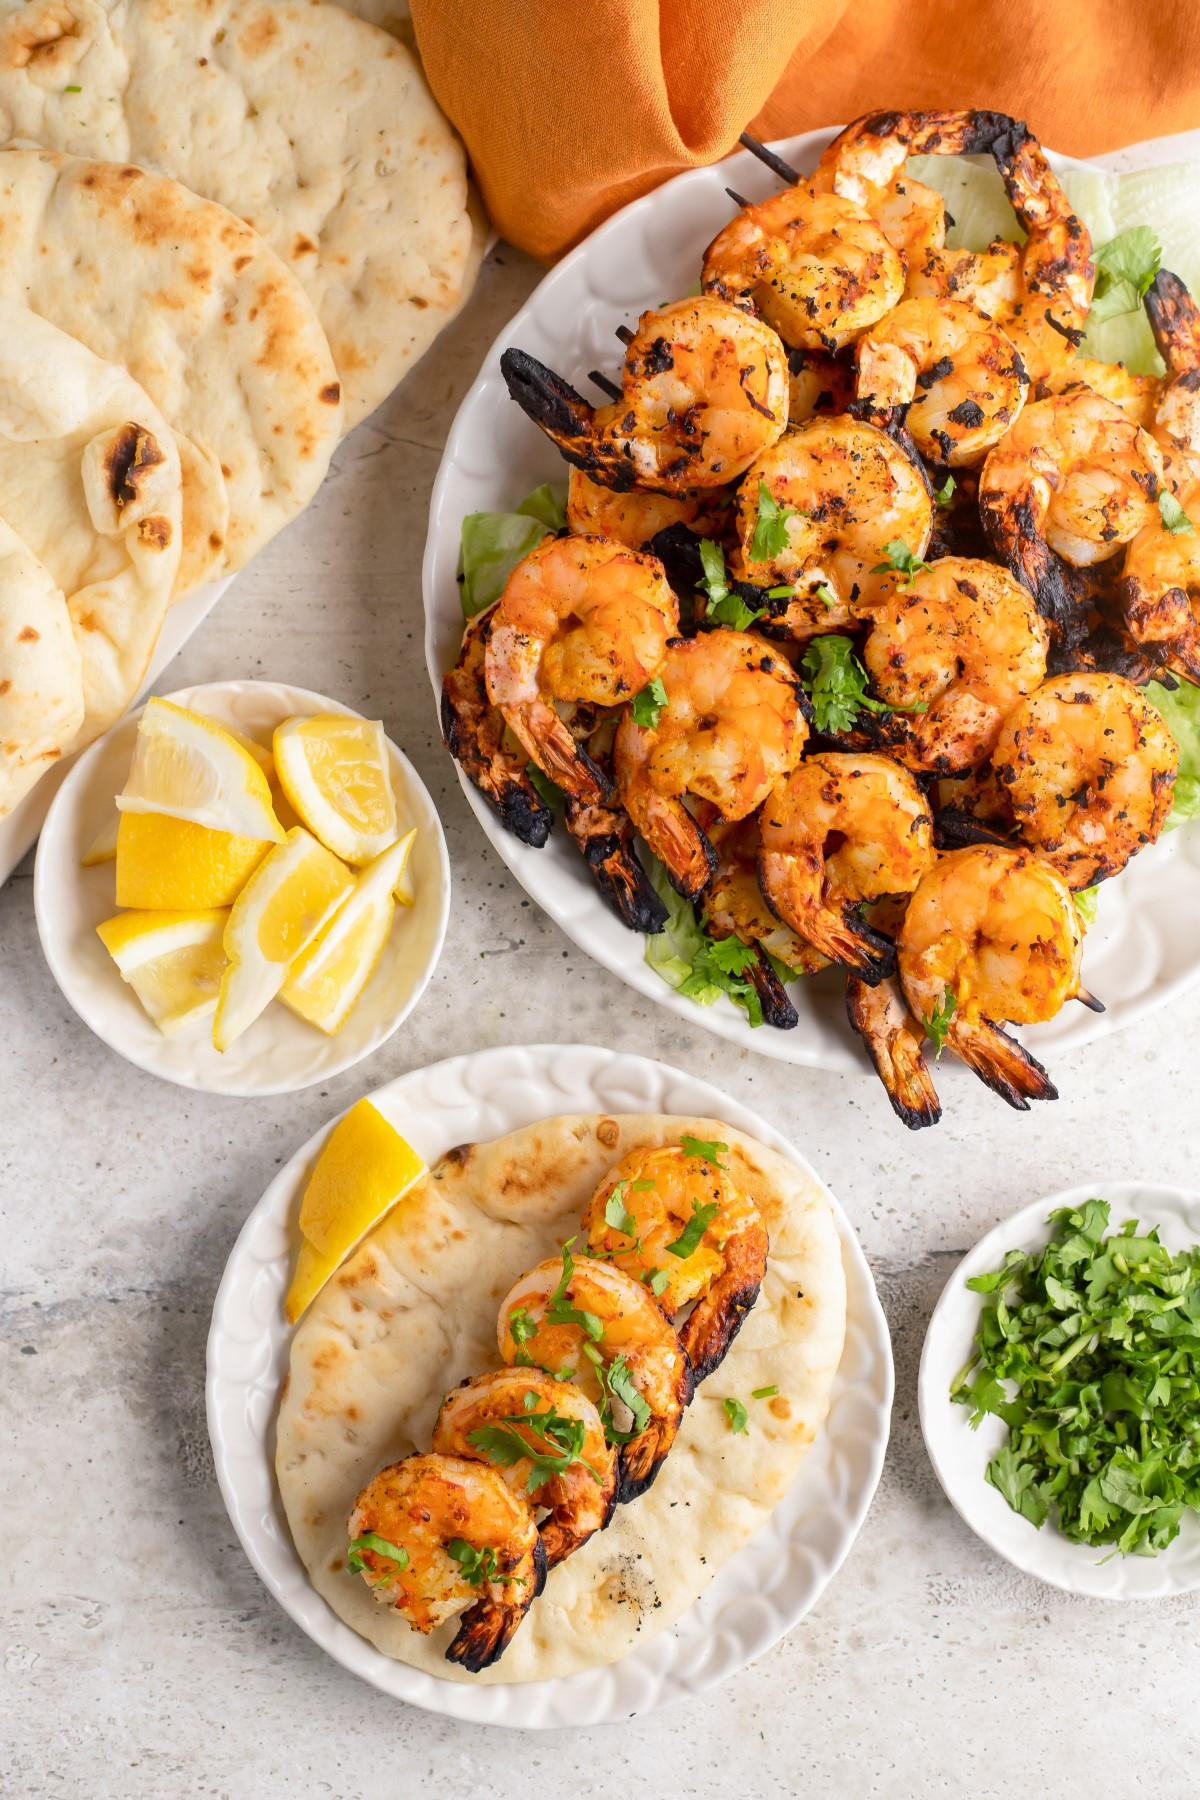 Grilled Tandoori Shrimp in a single layer on naan bread wit lemon wedges and a large plate of cooked shrimp on skewers